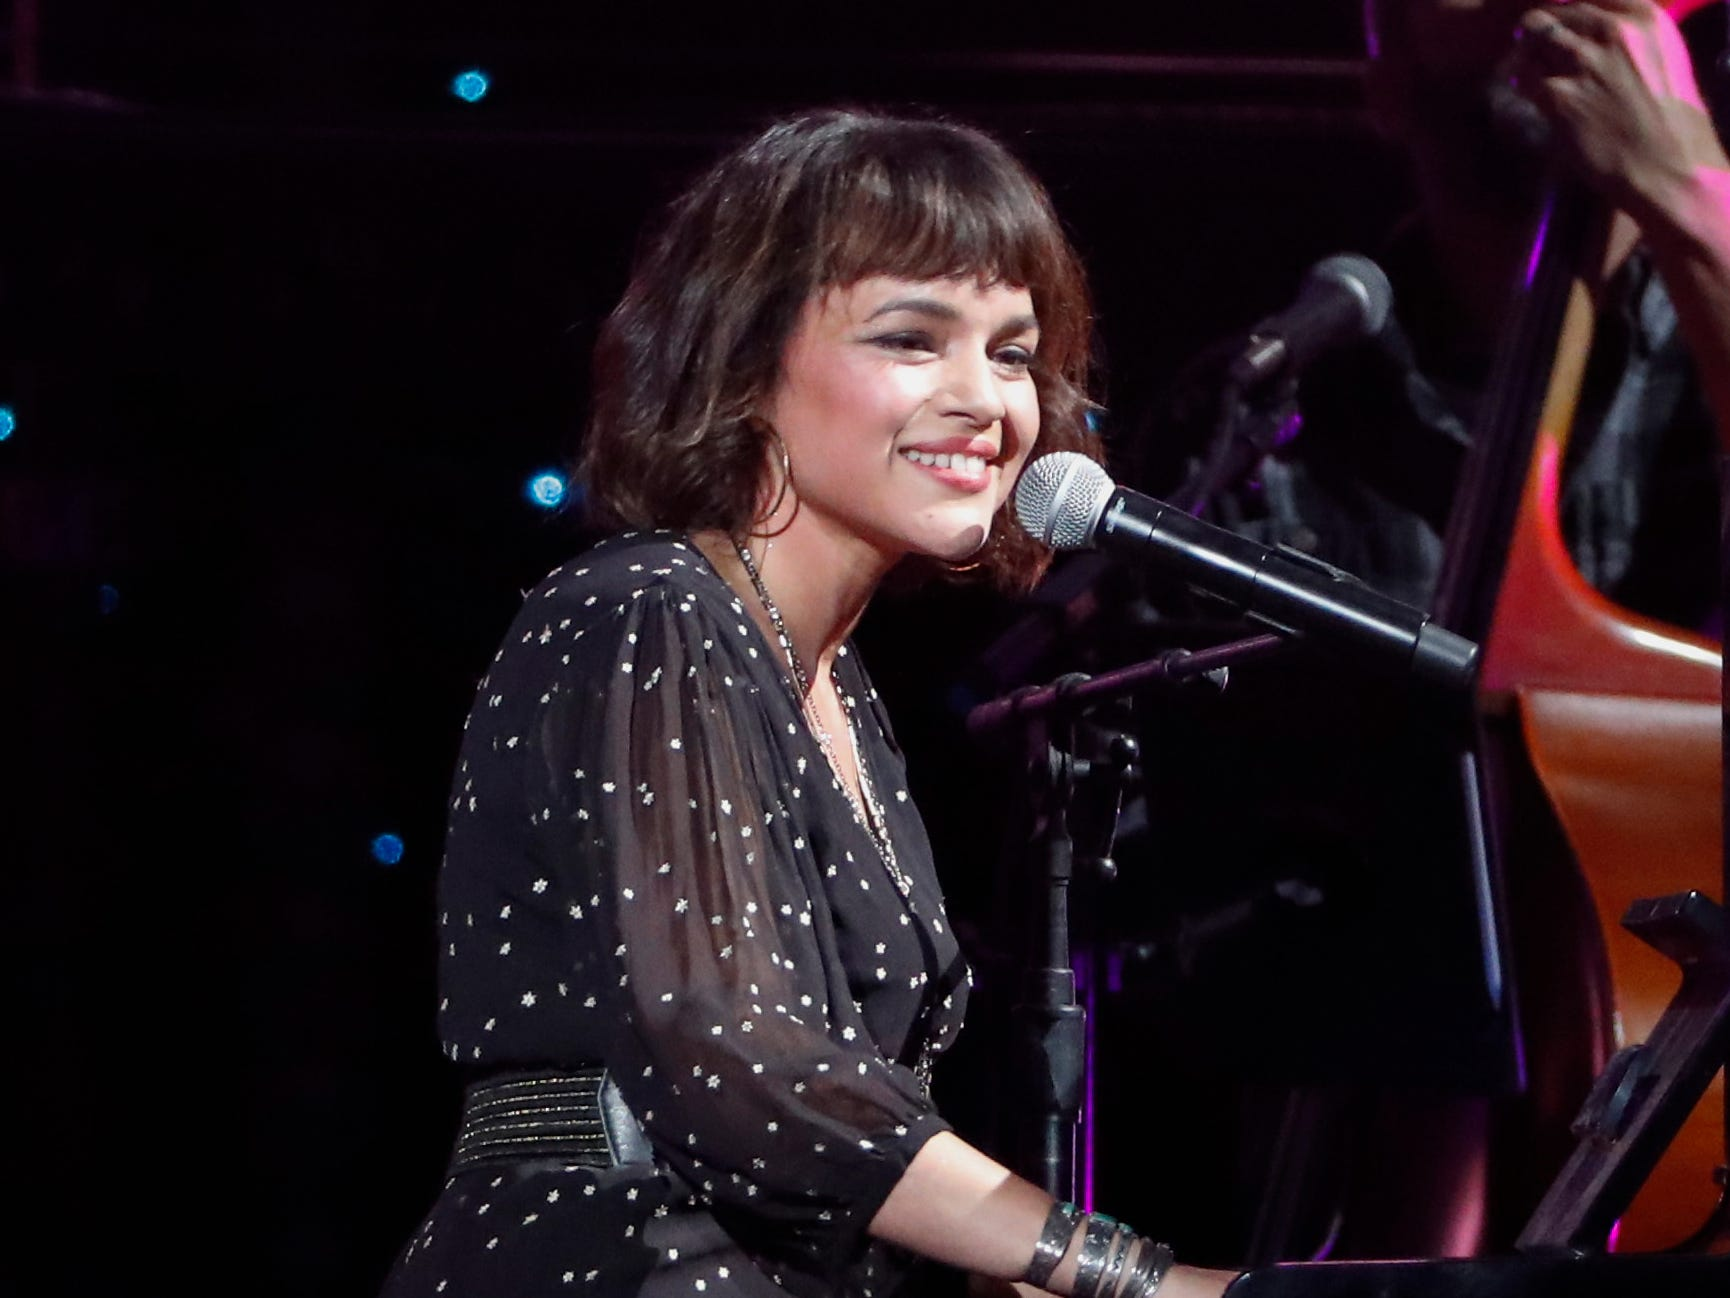 Norah Jones performs at Willie: Life & Songs Of An American Outlaw at Bridgestone Arena on Saturday, Jan. 12, 2019, in Nashville, Tenn. (Photo by Al Wagner/Invision/AP) ORG XMIT: TNAW118